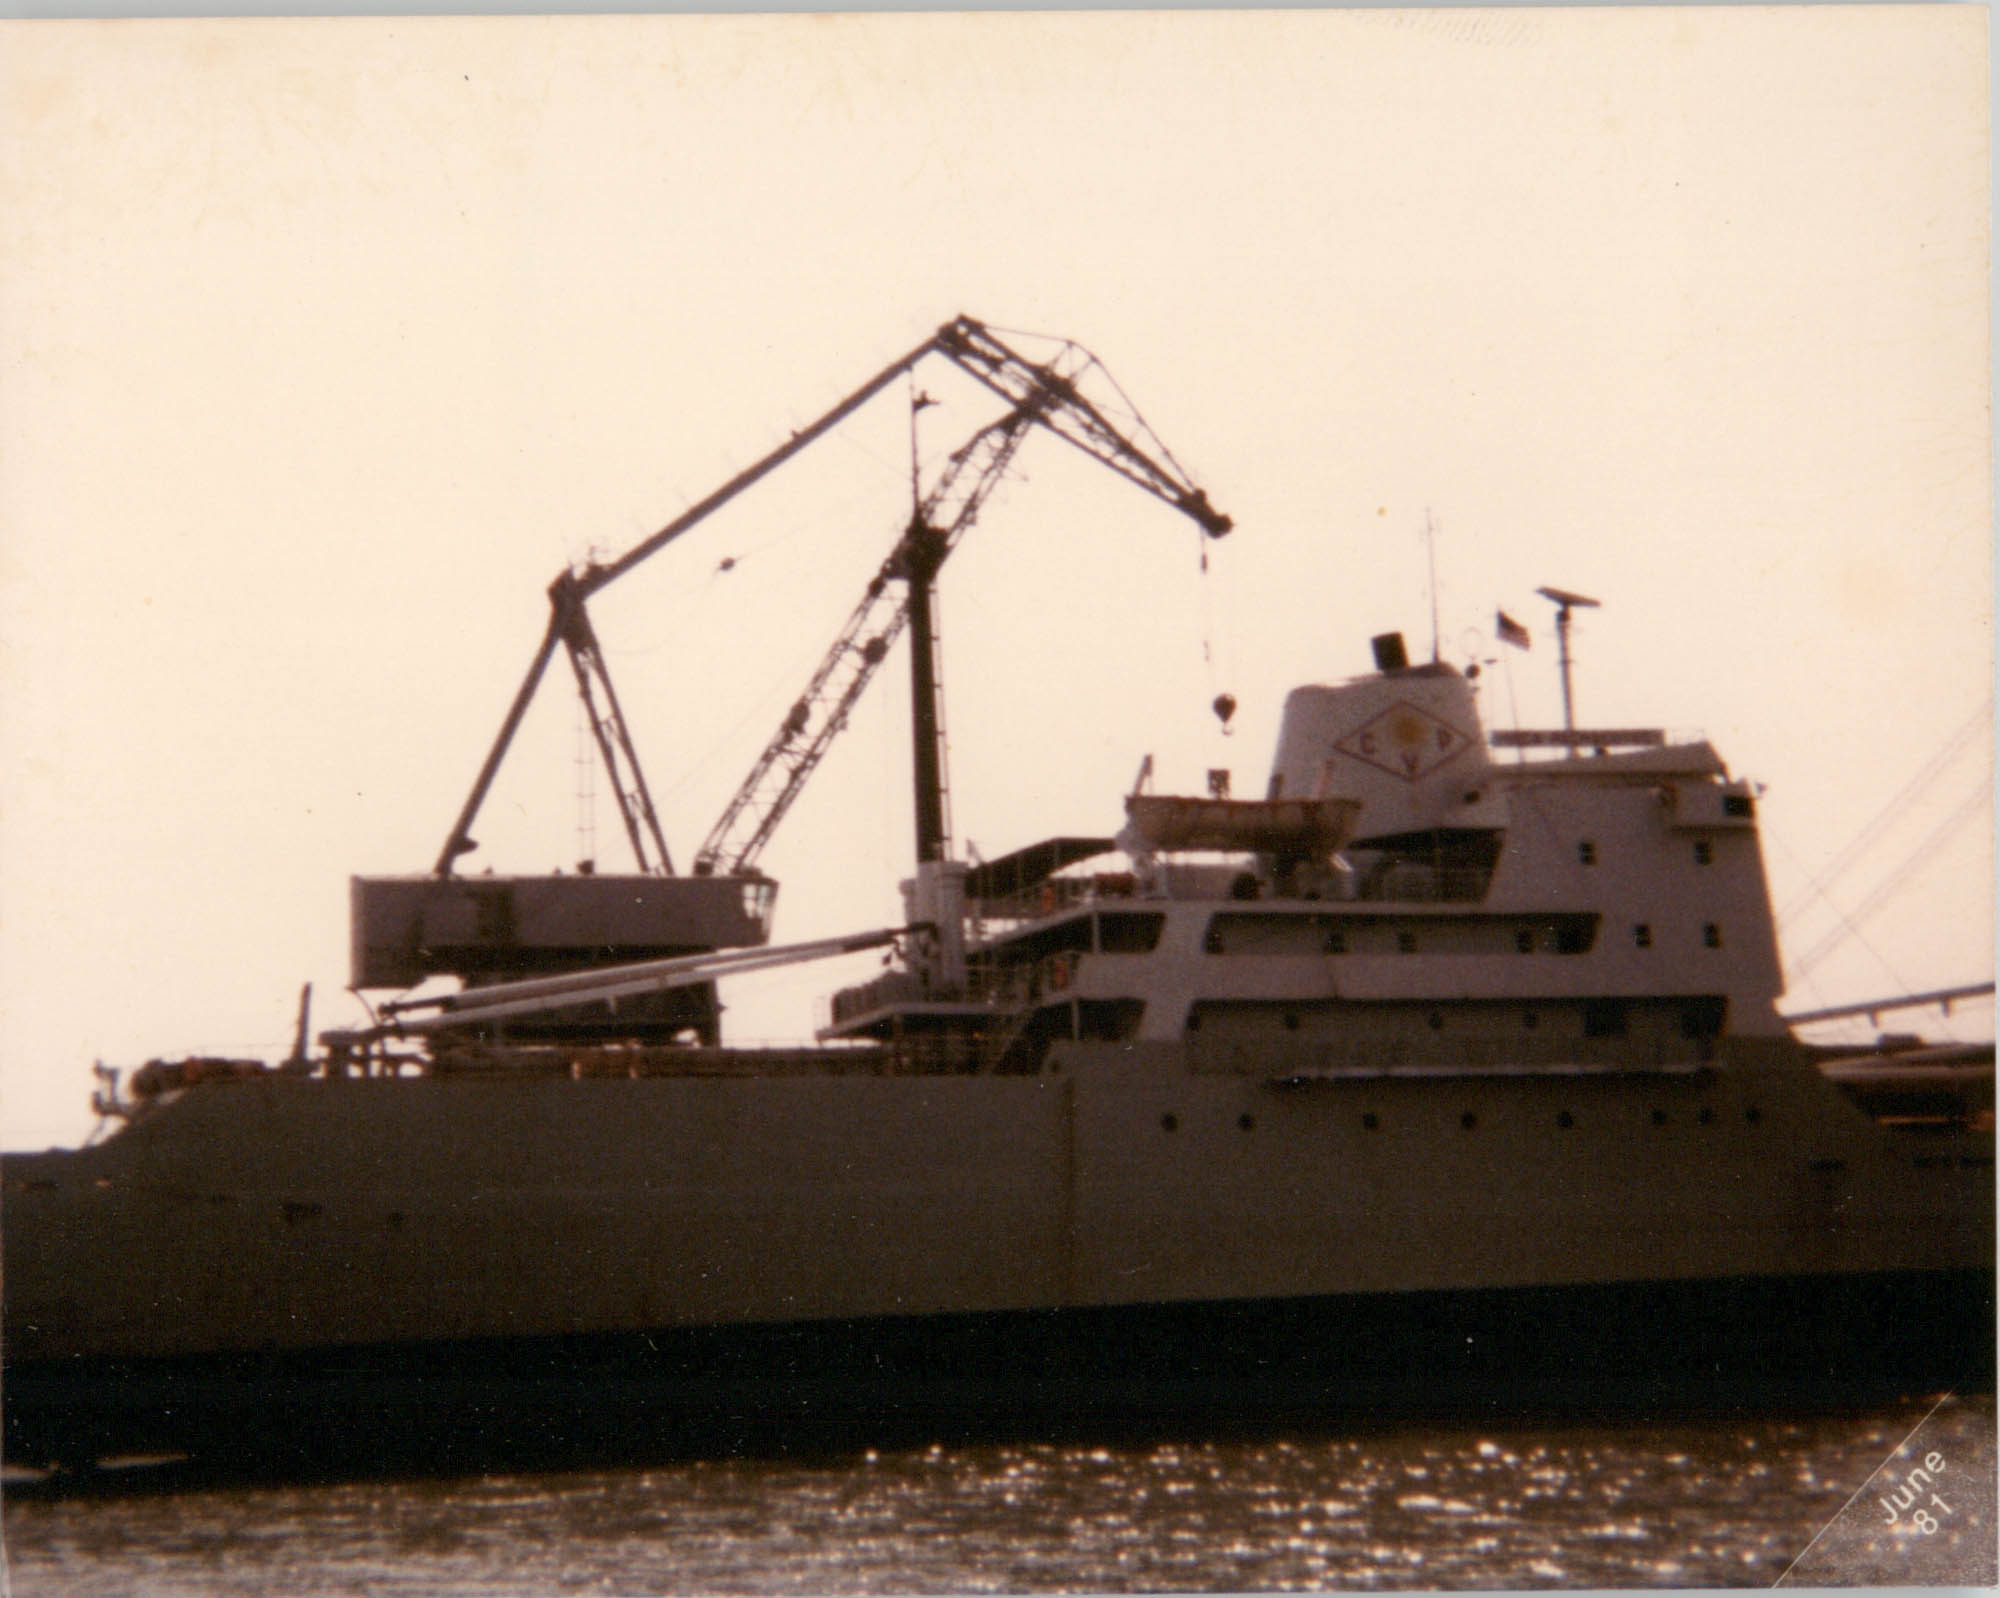 Photograph of a Ship